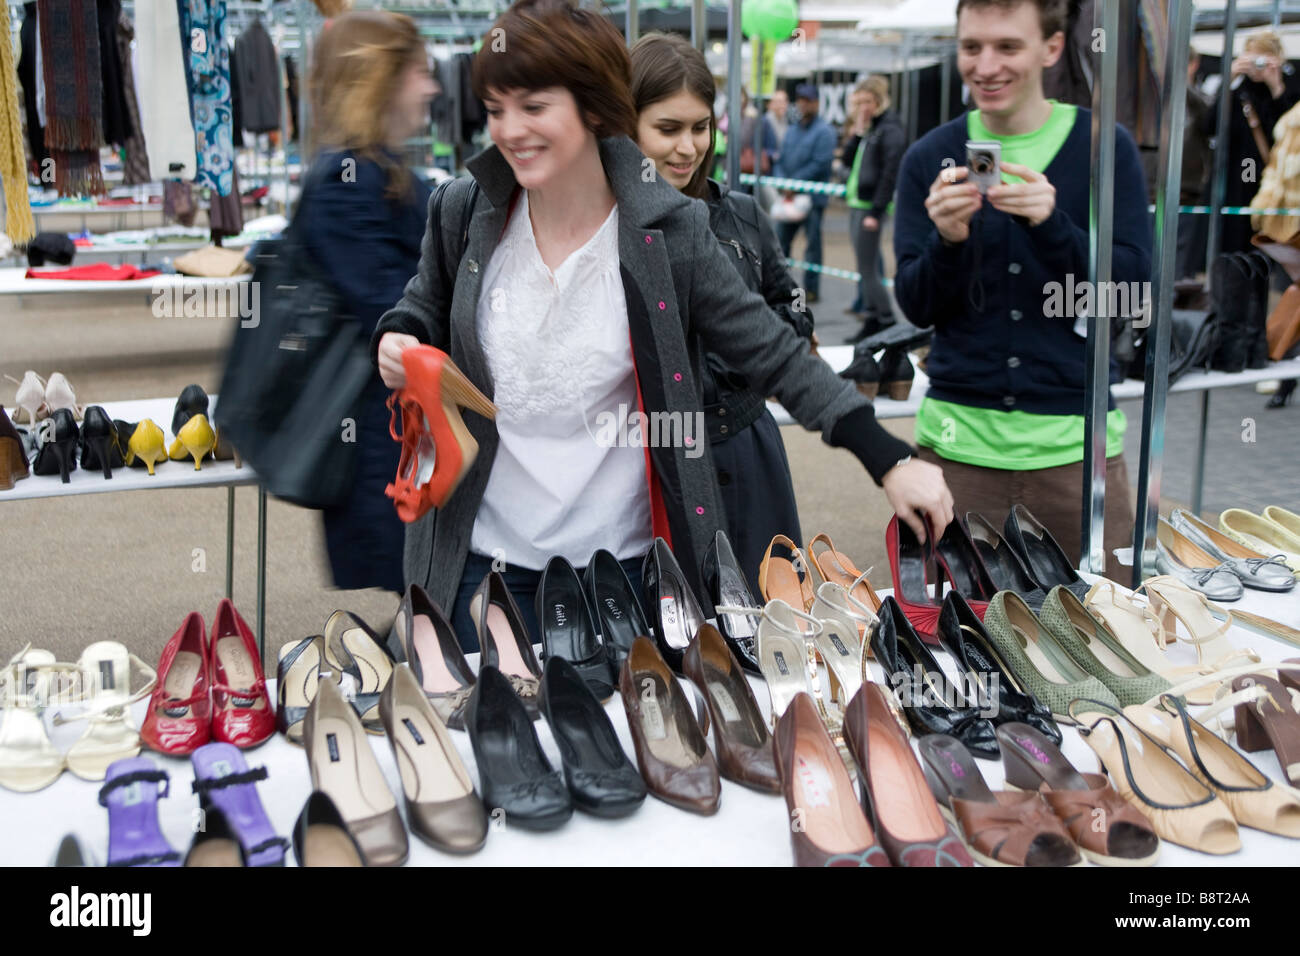 What's even better value than a jumble sale? Alchemise your old stuff into fashion gold at London's swap shops. This isn't about fusty old second-hand clothes, it's about boutique style exchanges.